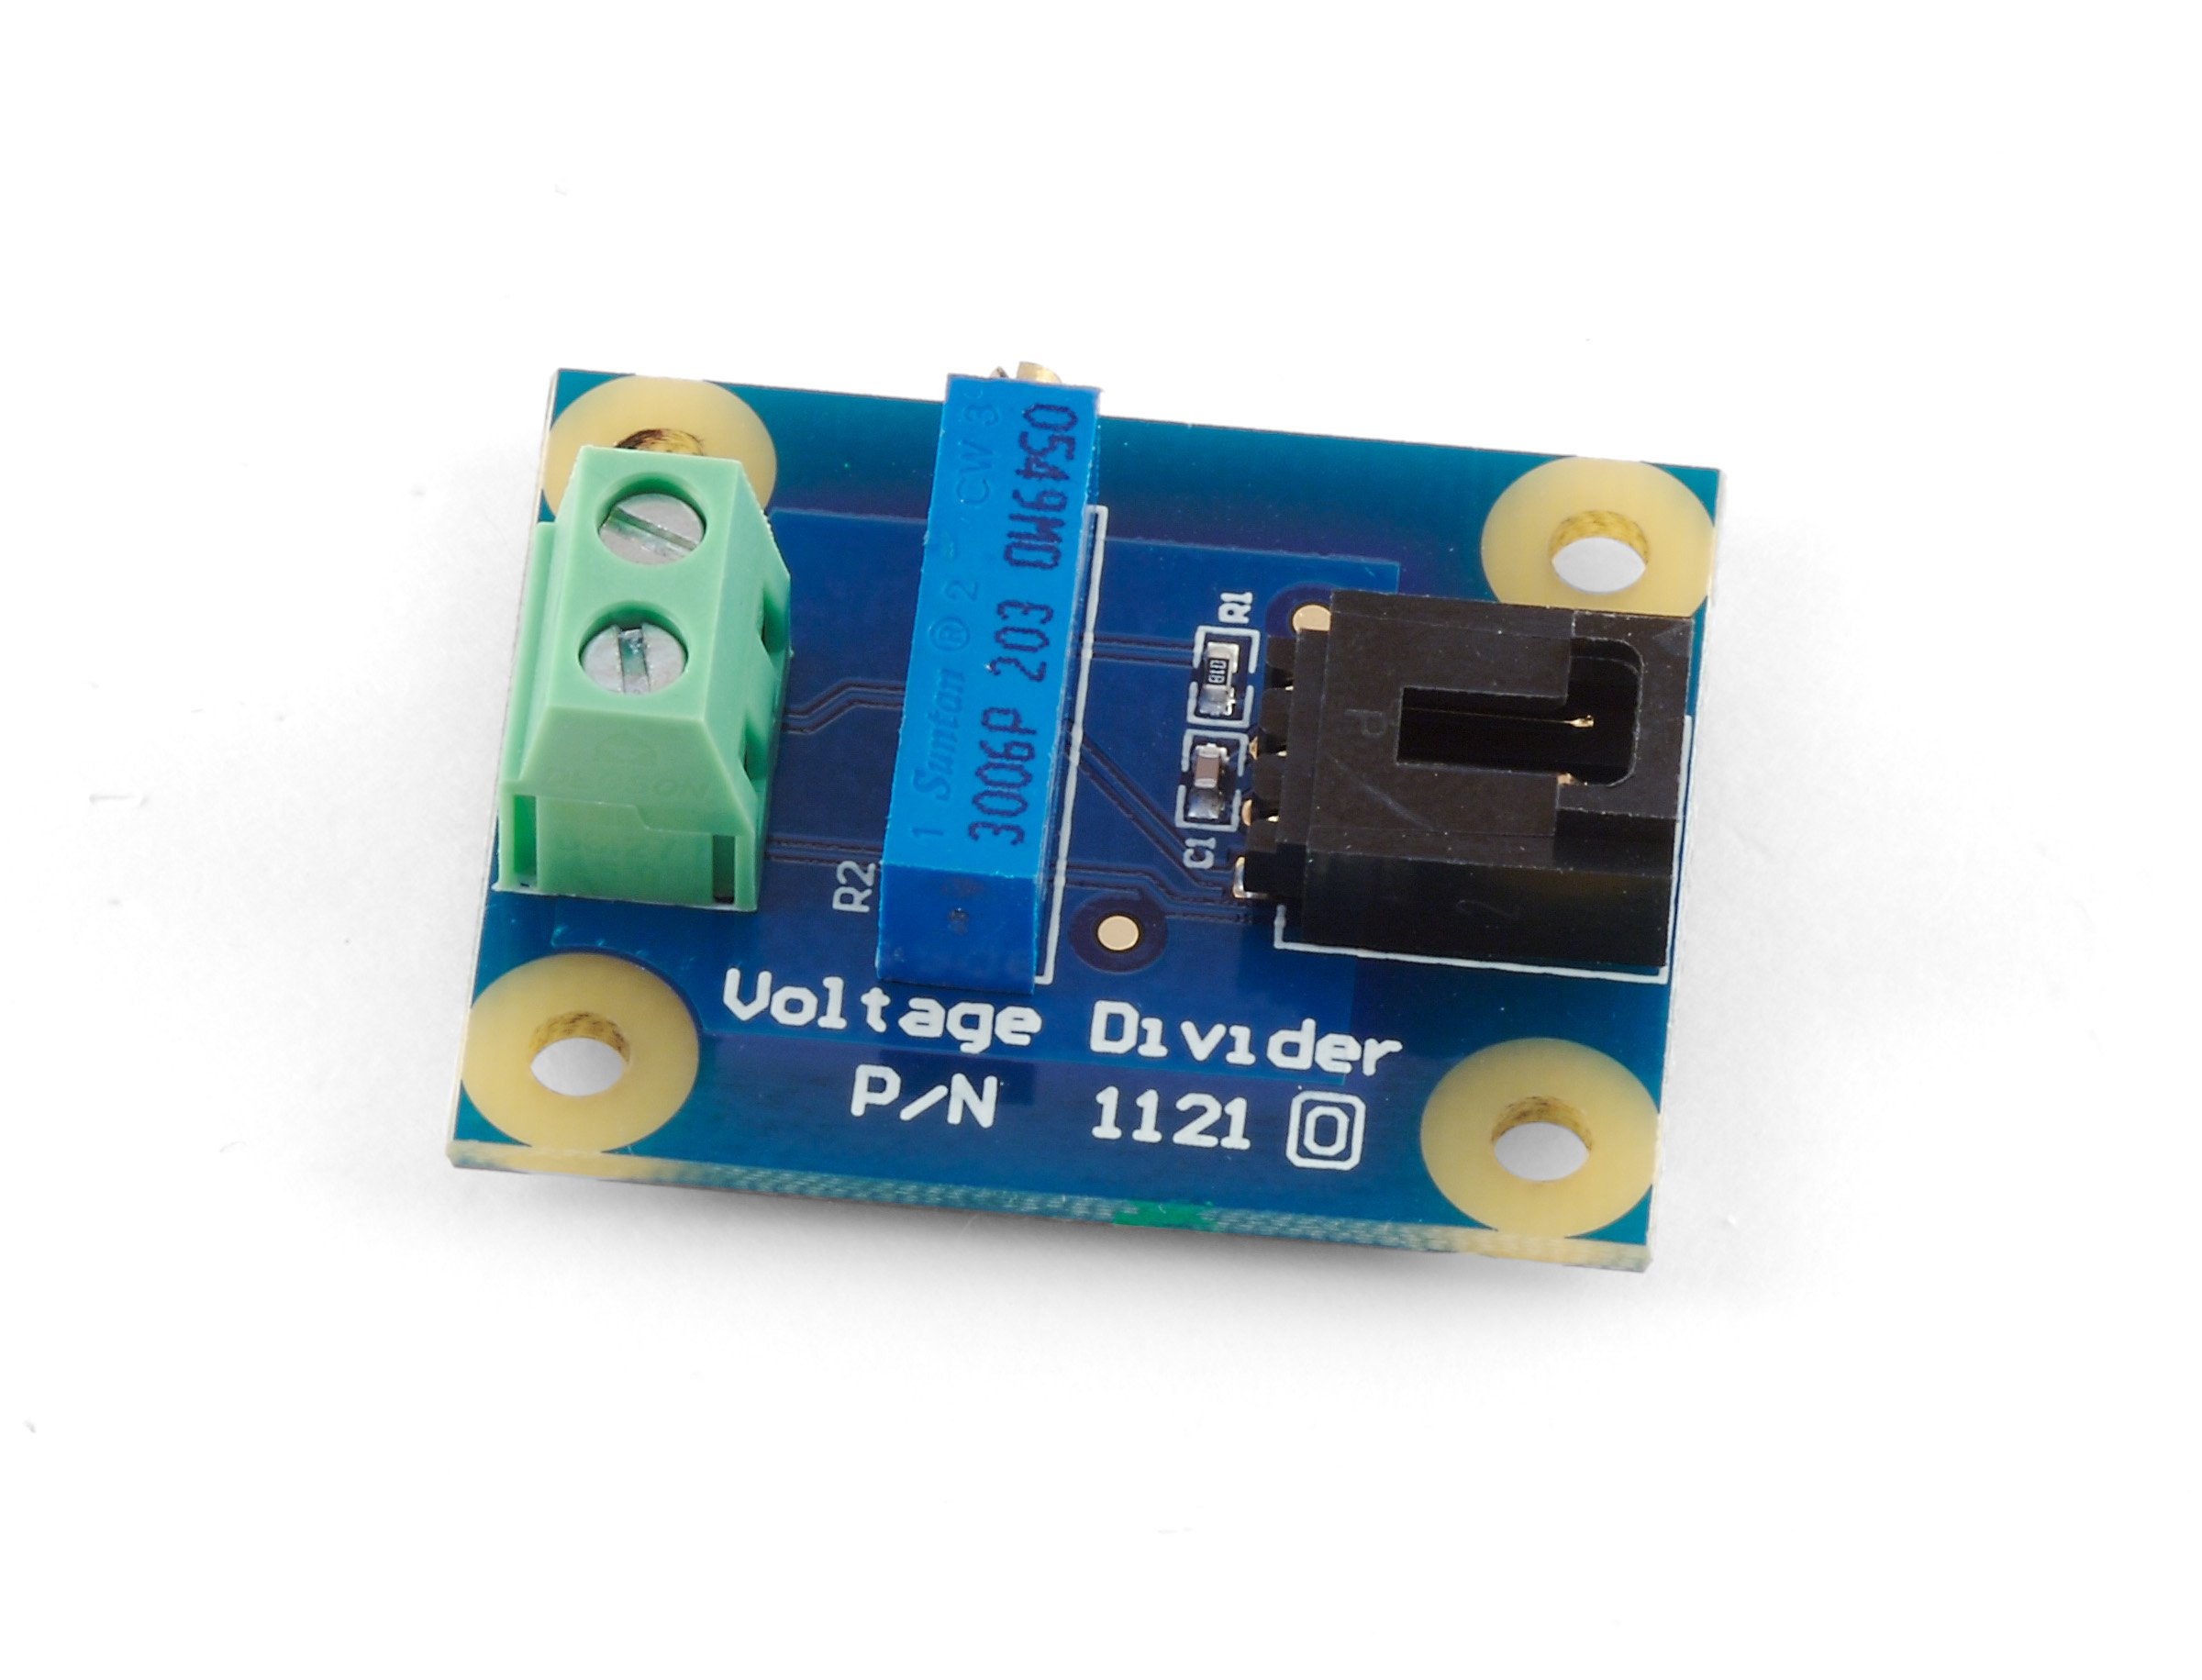 Voltage Divider 1121 0 At Phidgets Is A Circuit That Produces An Output Adapter For Resistance Based Sensors